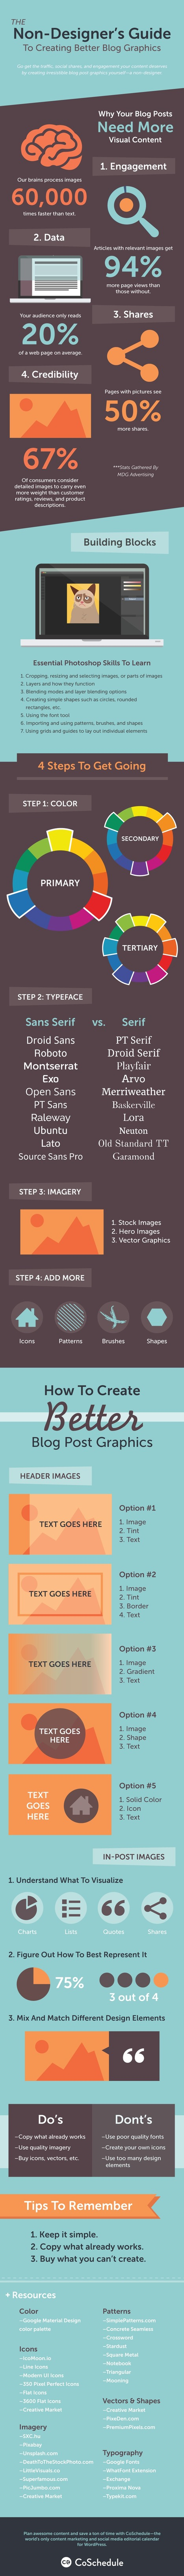 The Non-Designer's Guide to Creating Better Blog Graphics #Infographic | MarketingHits | Scoop.it